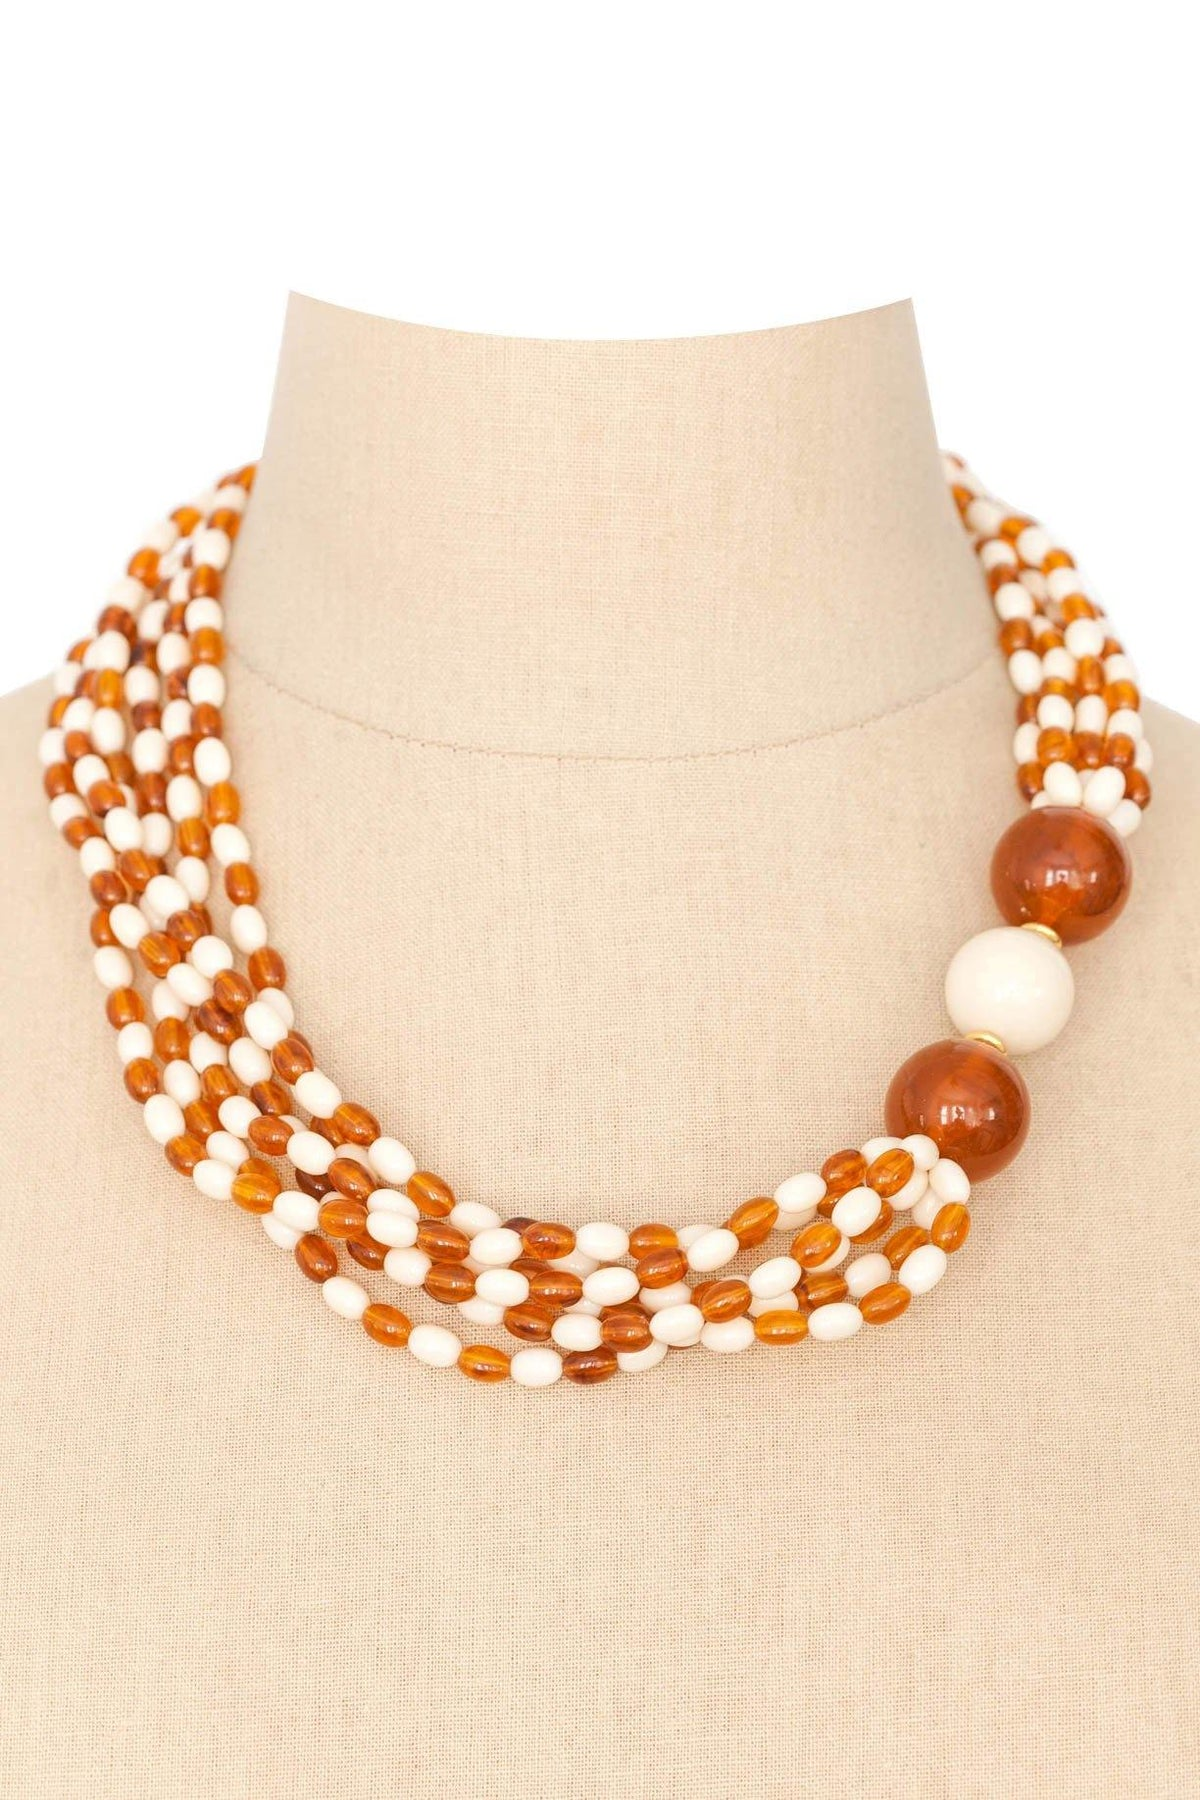 60's Vintage Beaded Multi-Strand Necklace